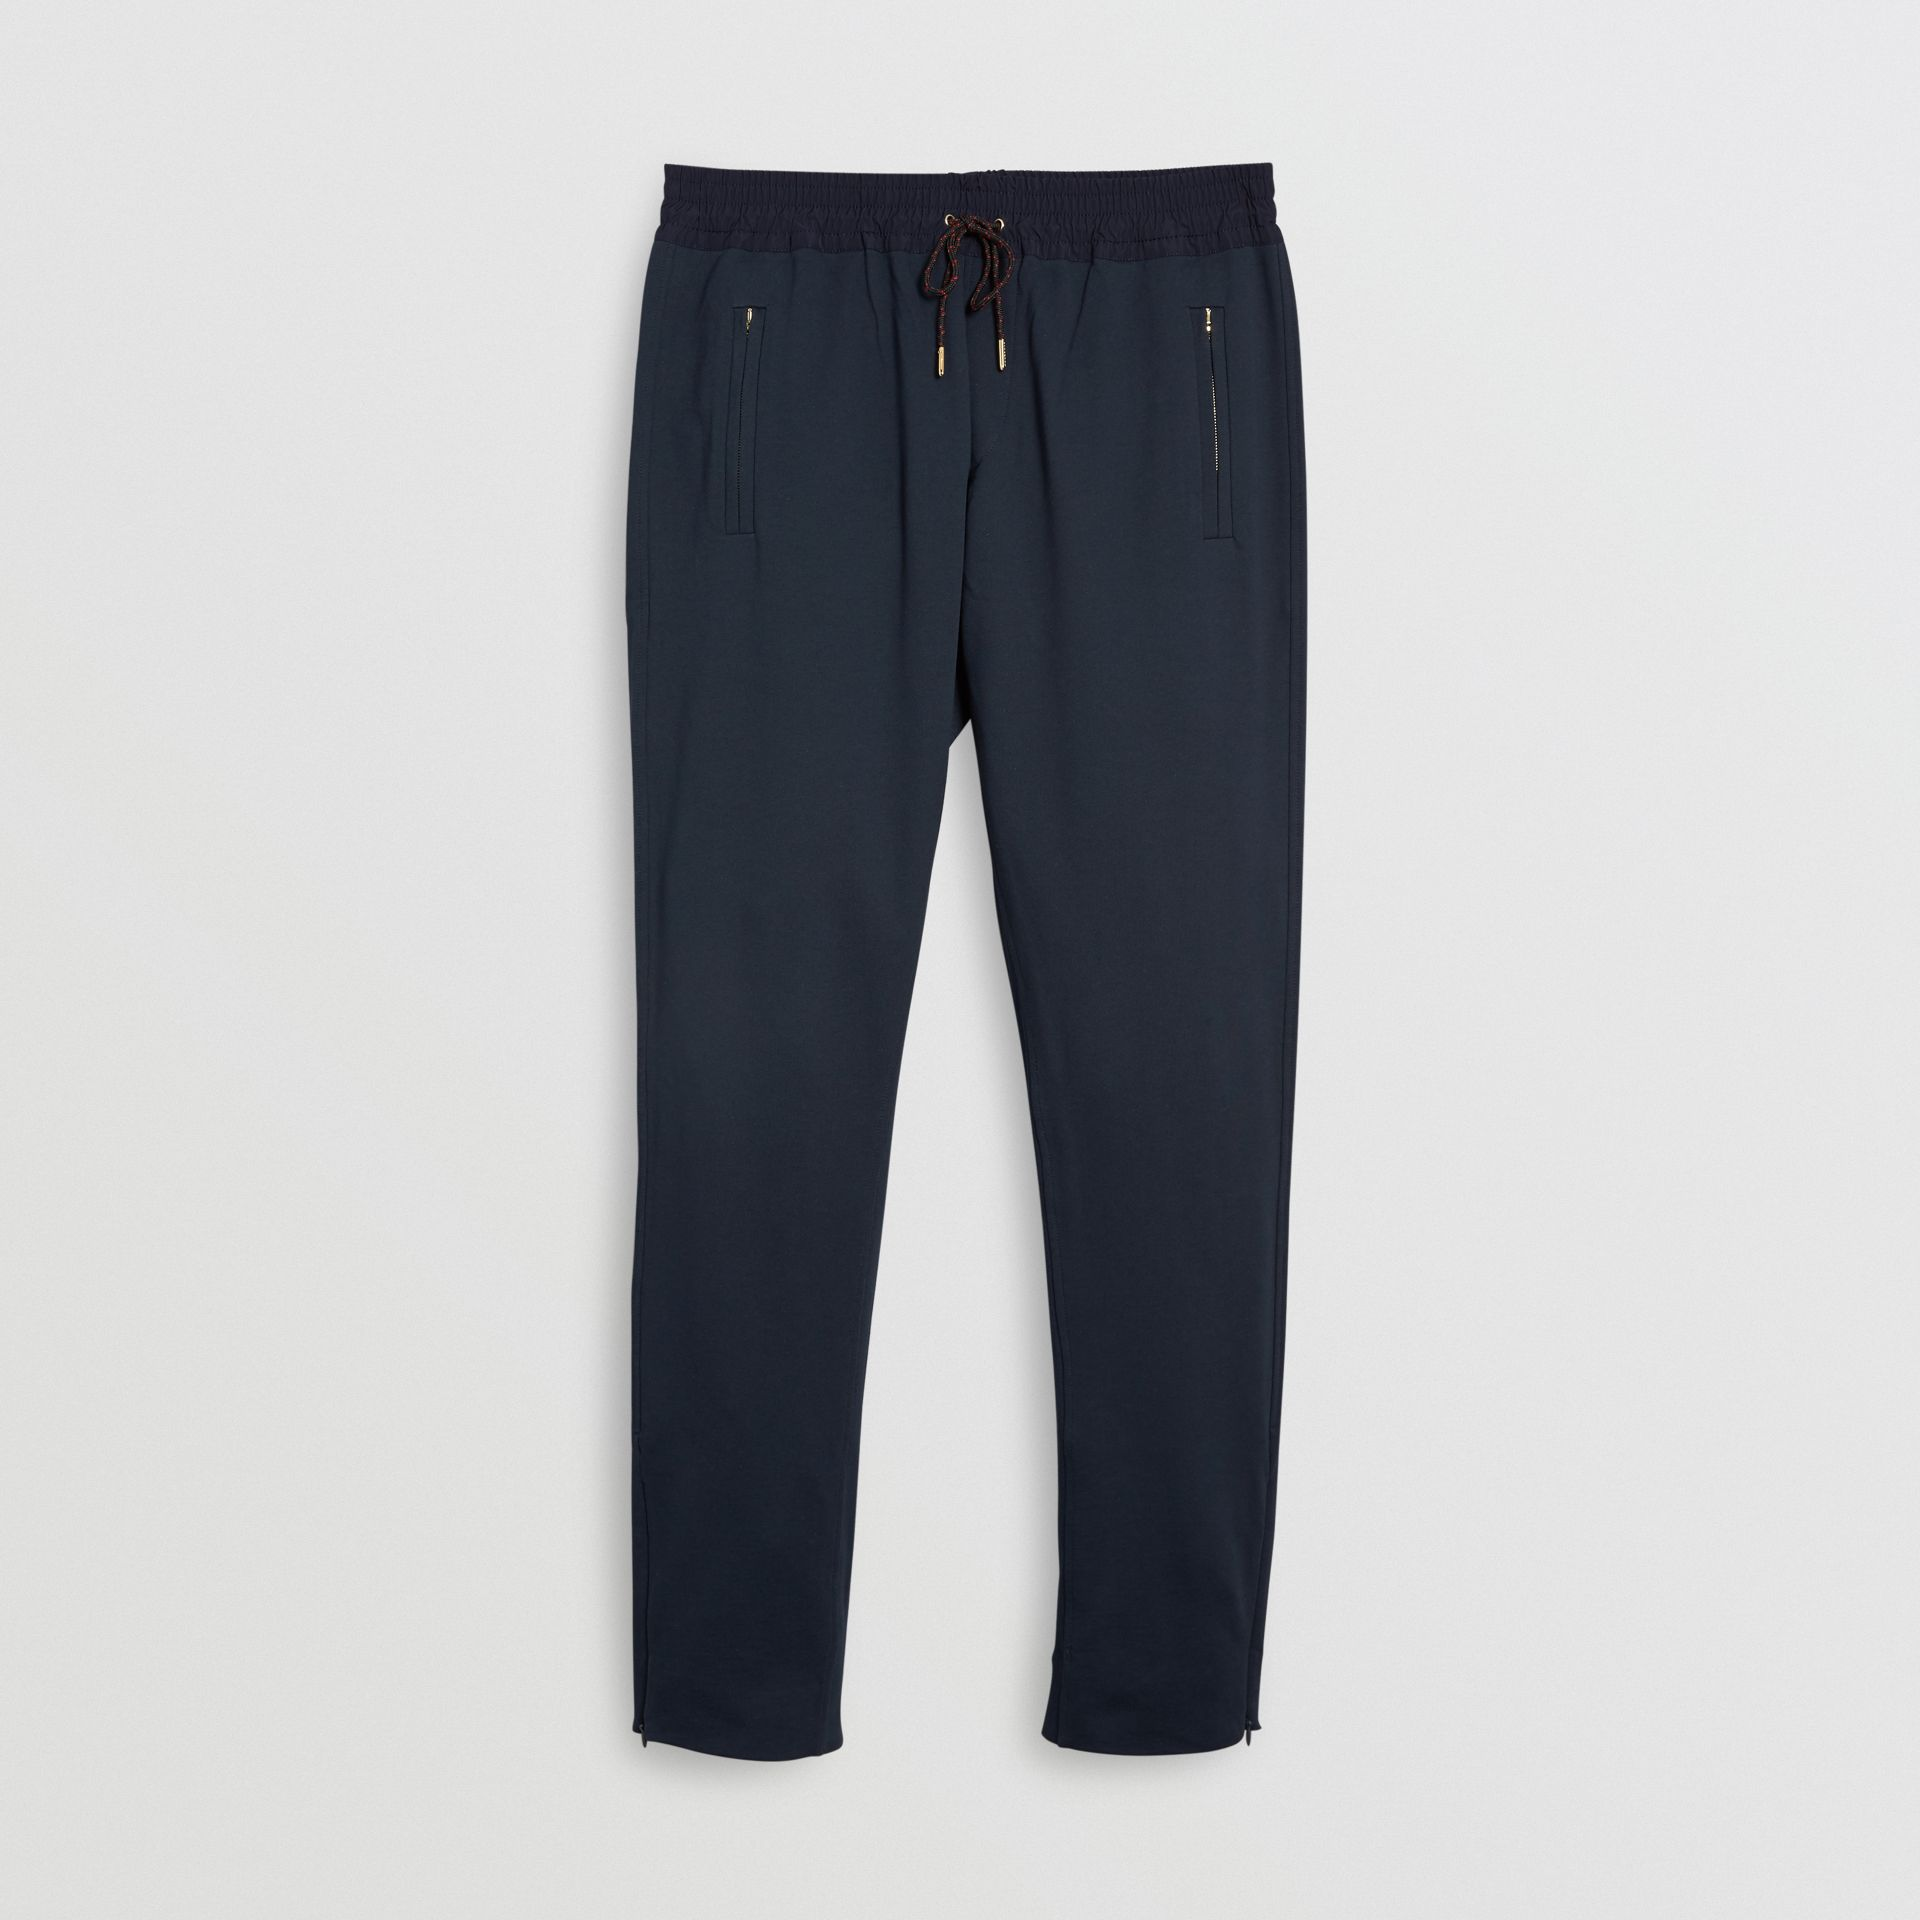 Pantalon de survêtement en coton (Marine) - Homme | Burberry - photo de la galerie 3